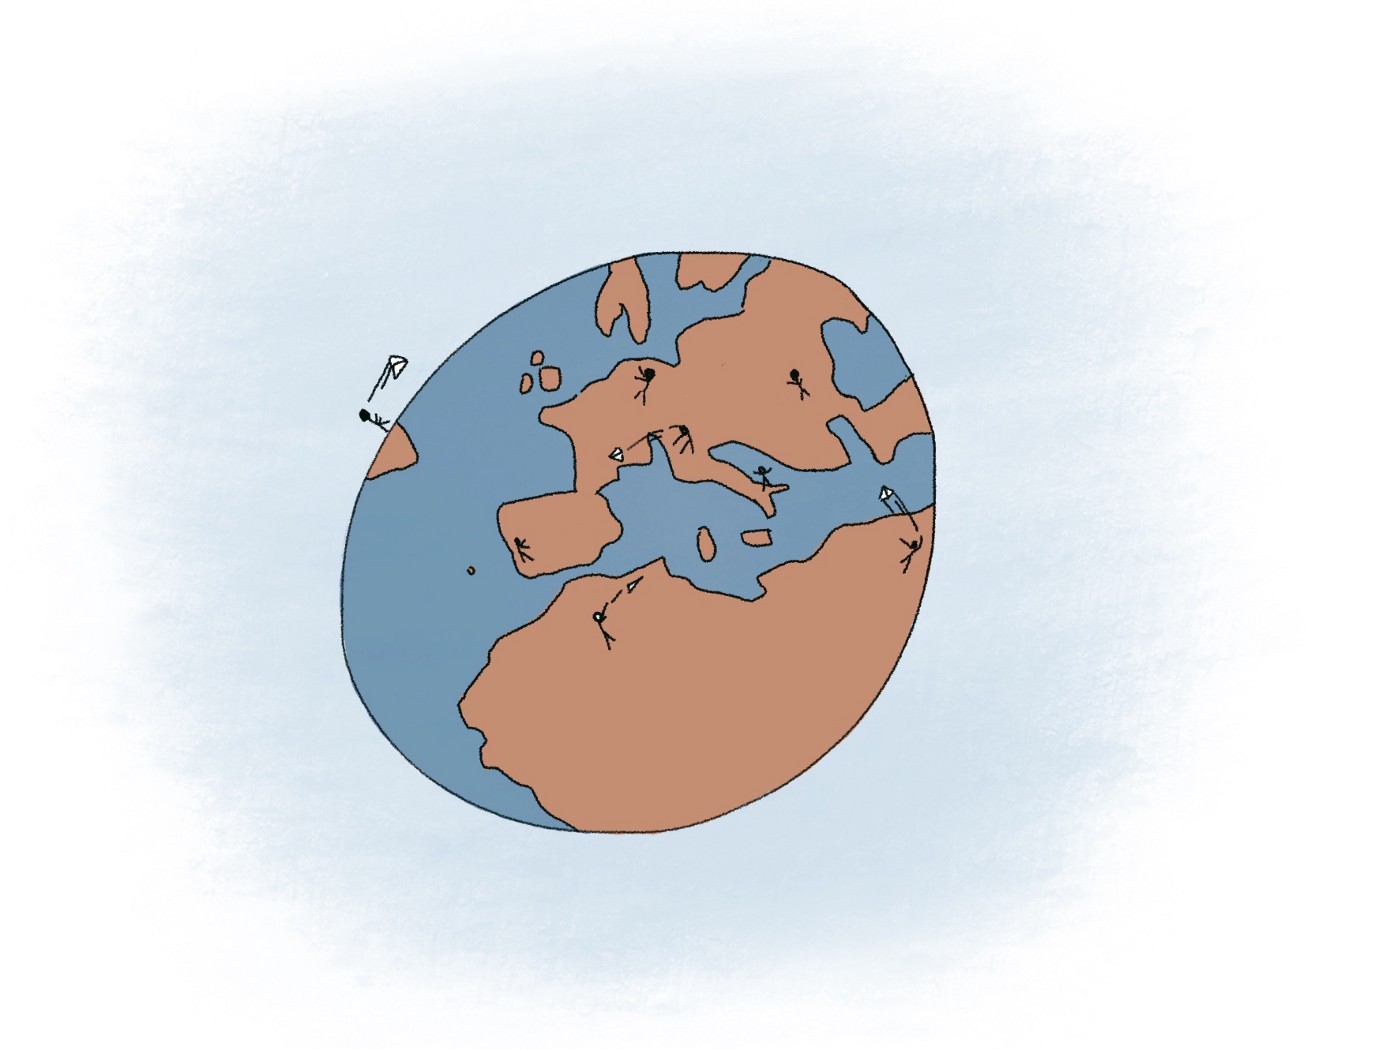 A cartoon planet Earth on which several people are throwing paper airplanes back and forth to each other.